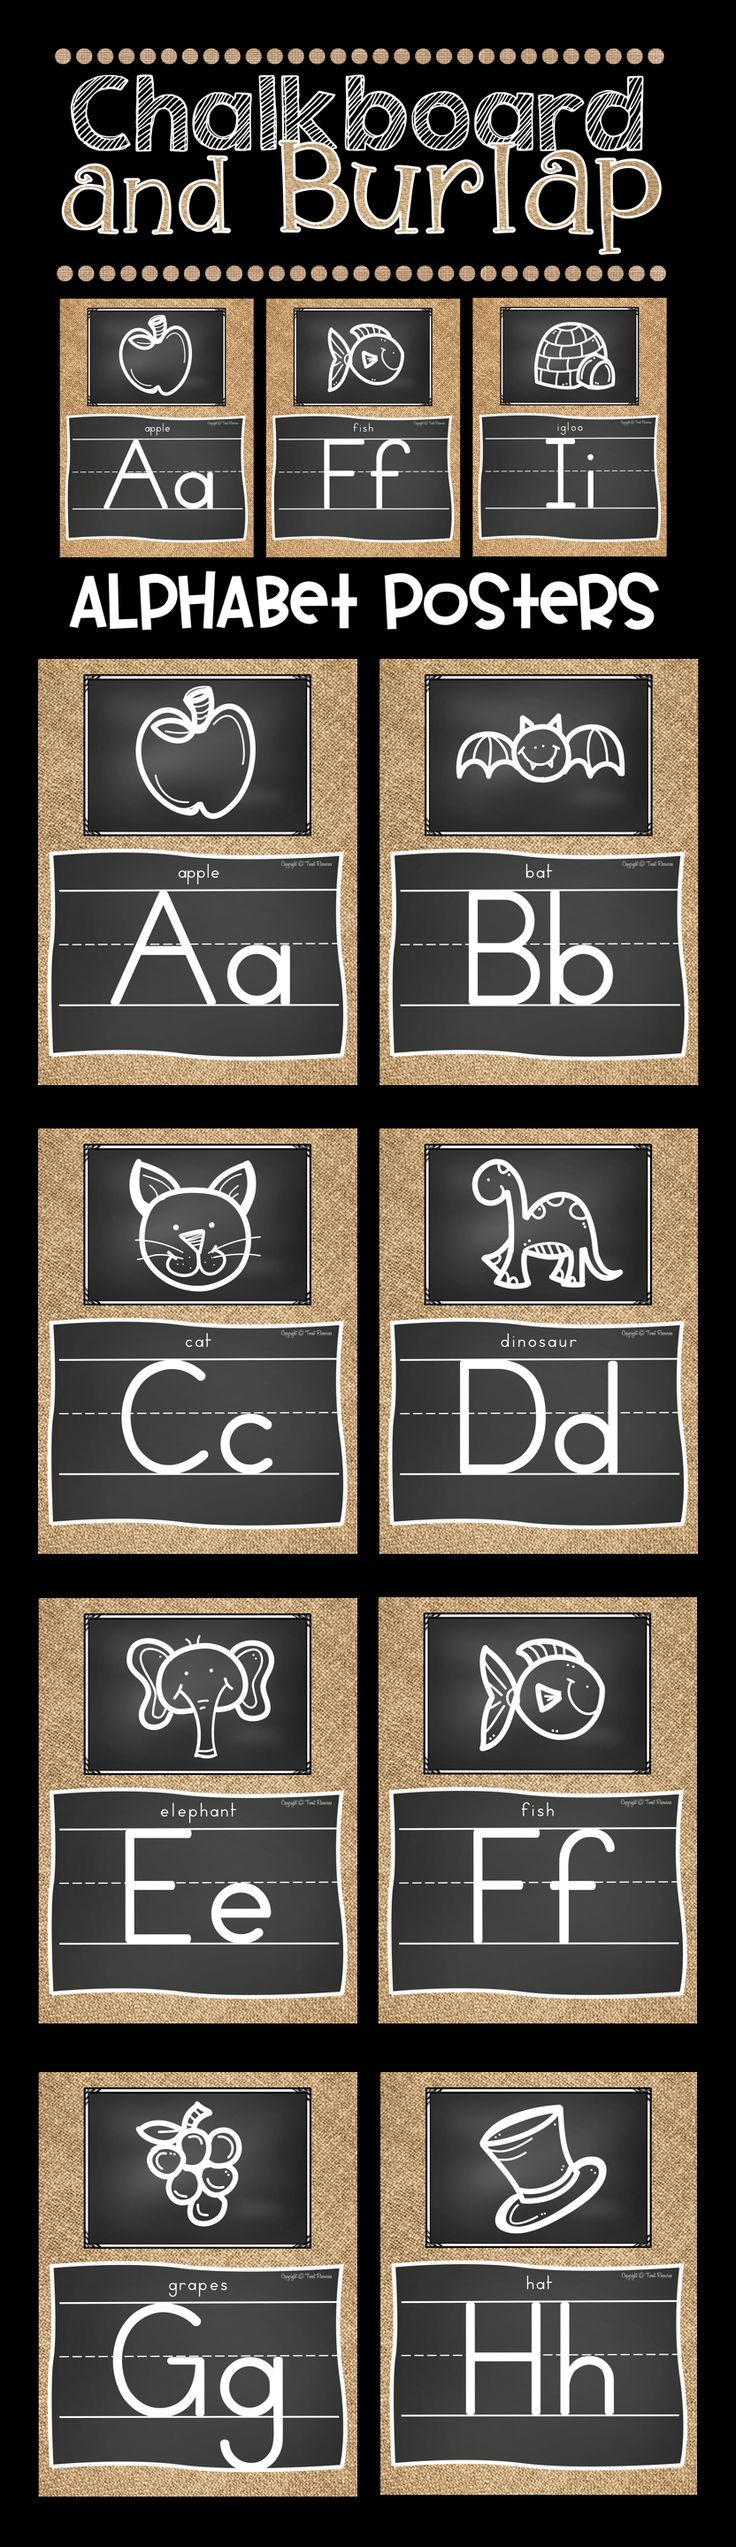 How adorable is this burlap and chalkboard classroom decor? I love the chalkboard doodle pictures! I can't wait to decorate my classroom this Fall!